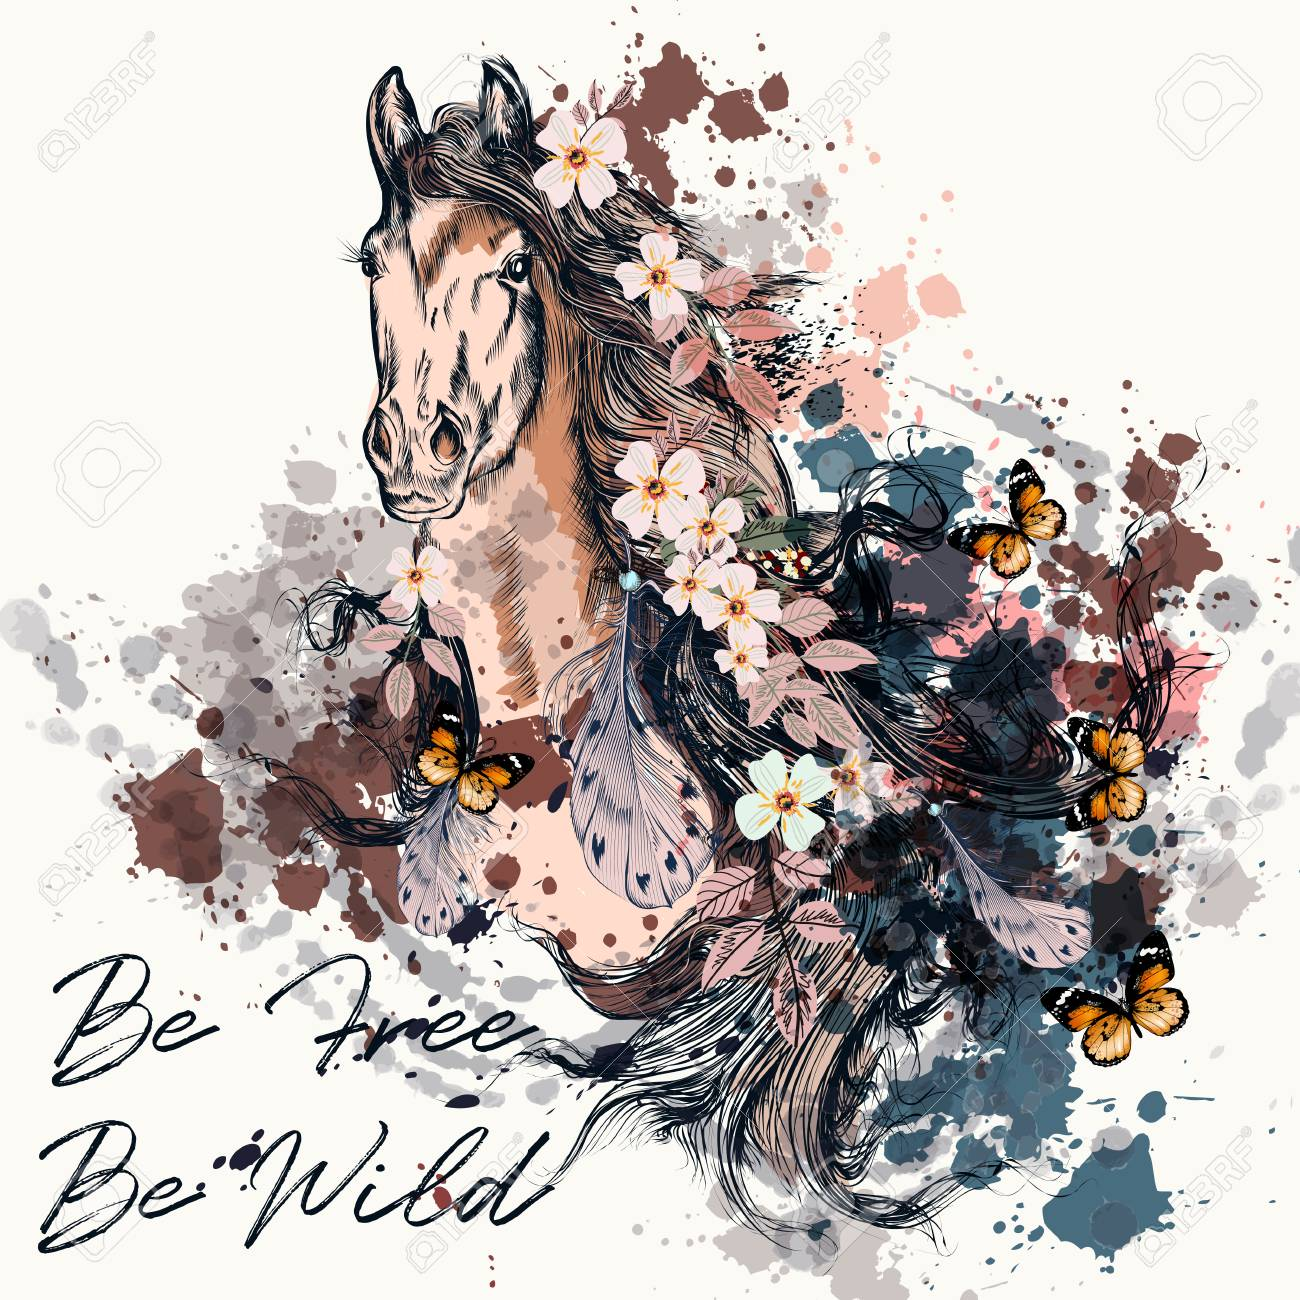 Fashion Boho Illustration With Wild Horse Be Free Royalty Free Cliparts Vectors And Stock Illustration Image 79560793